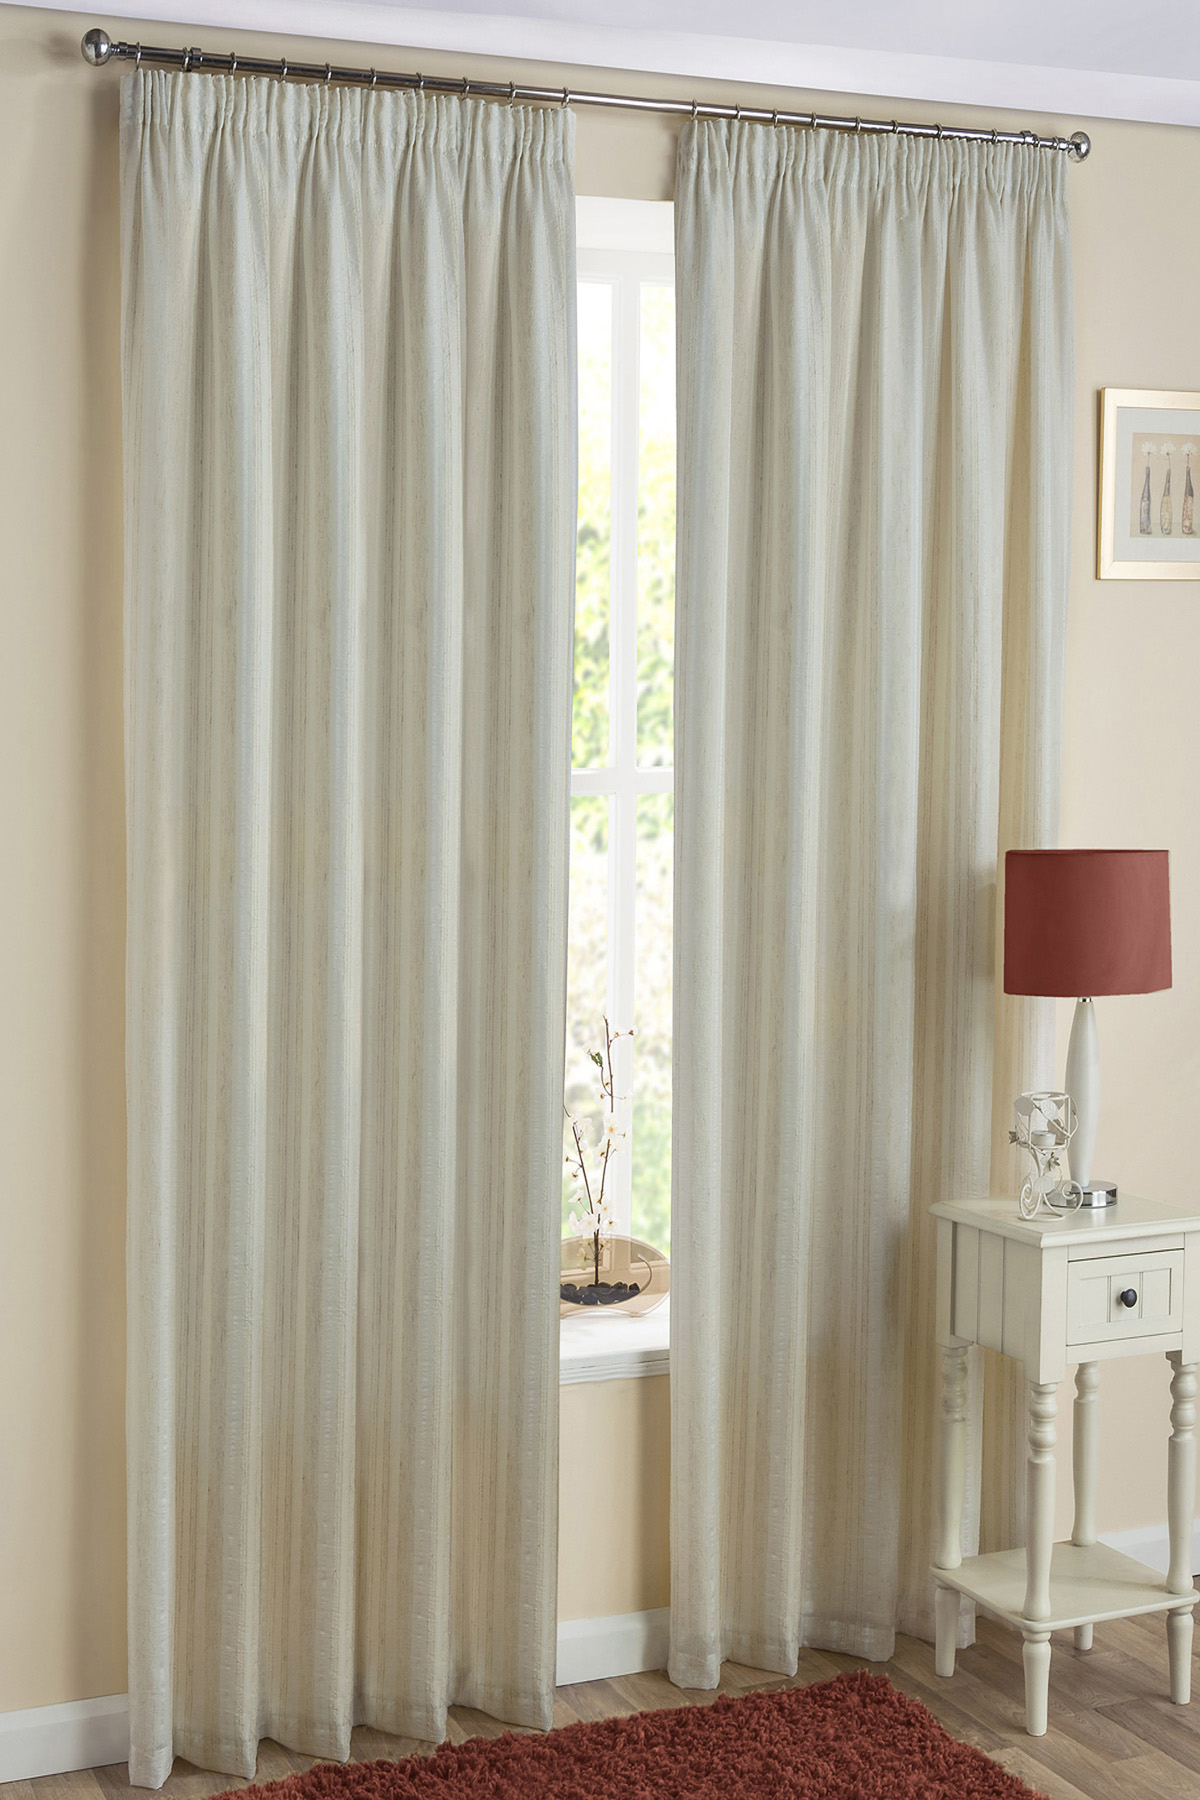 monaco readymade lined voile curtains YTPUQGY